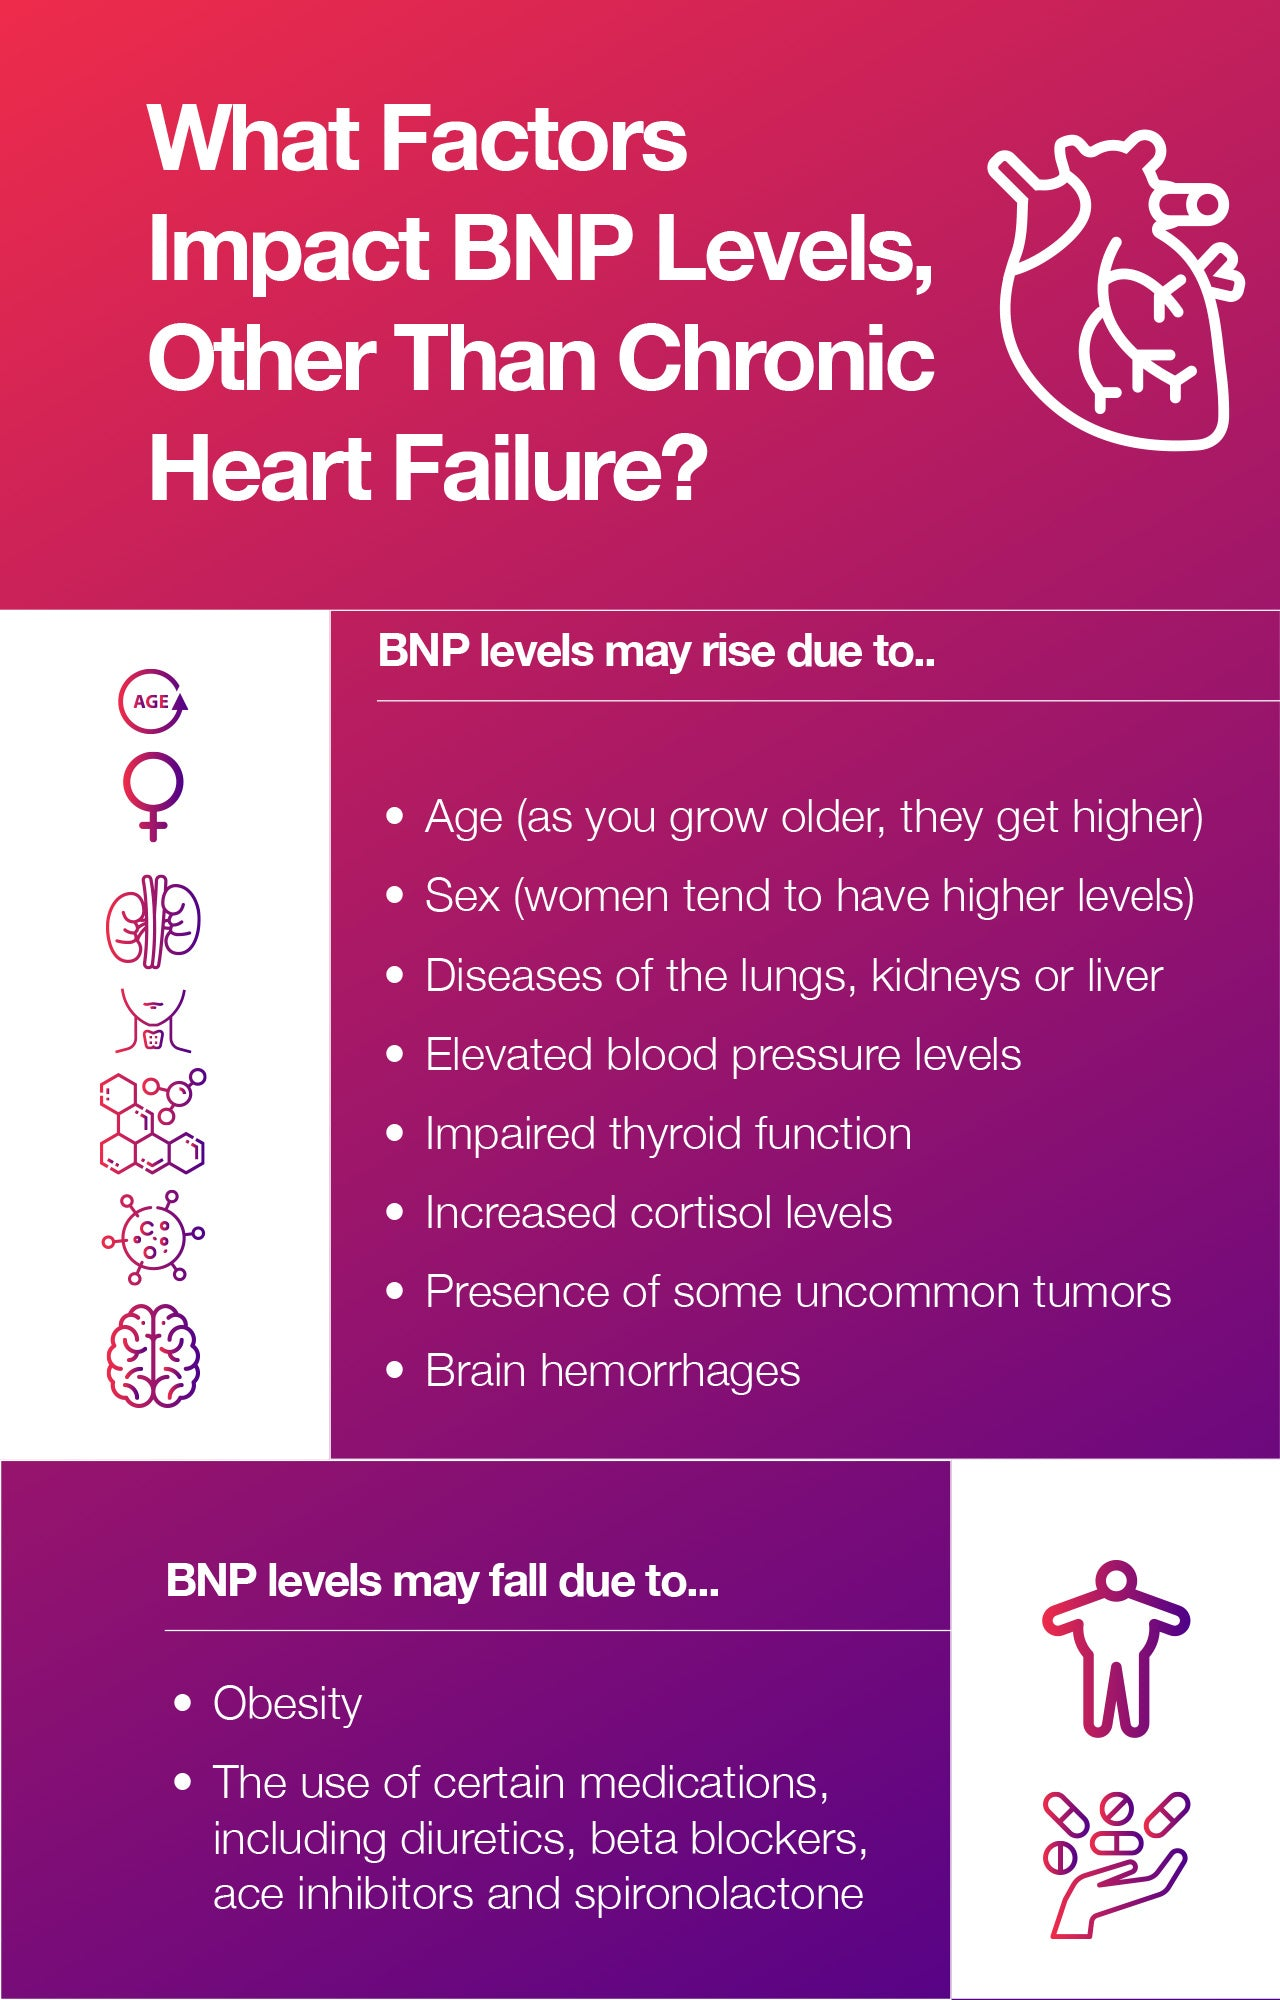 What Factors Impact BNP Levels, Other Than Chronic Heart Failure?